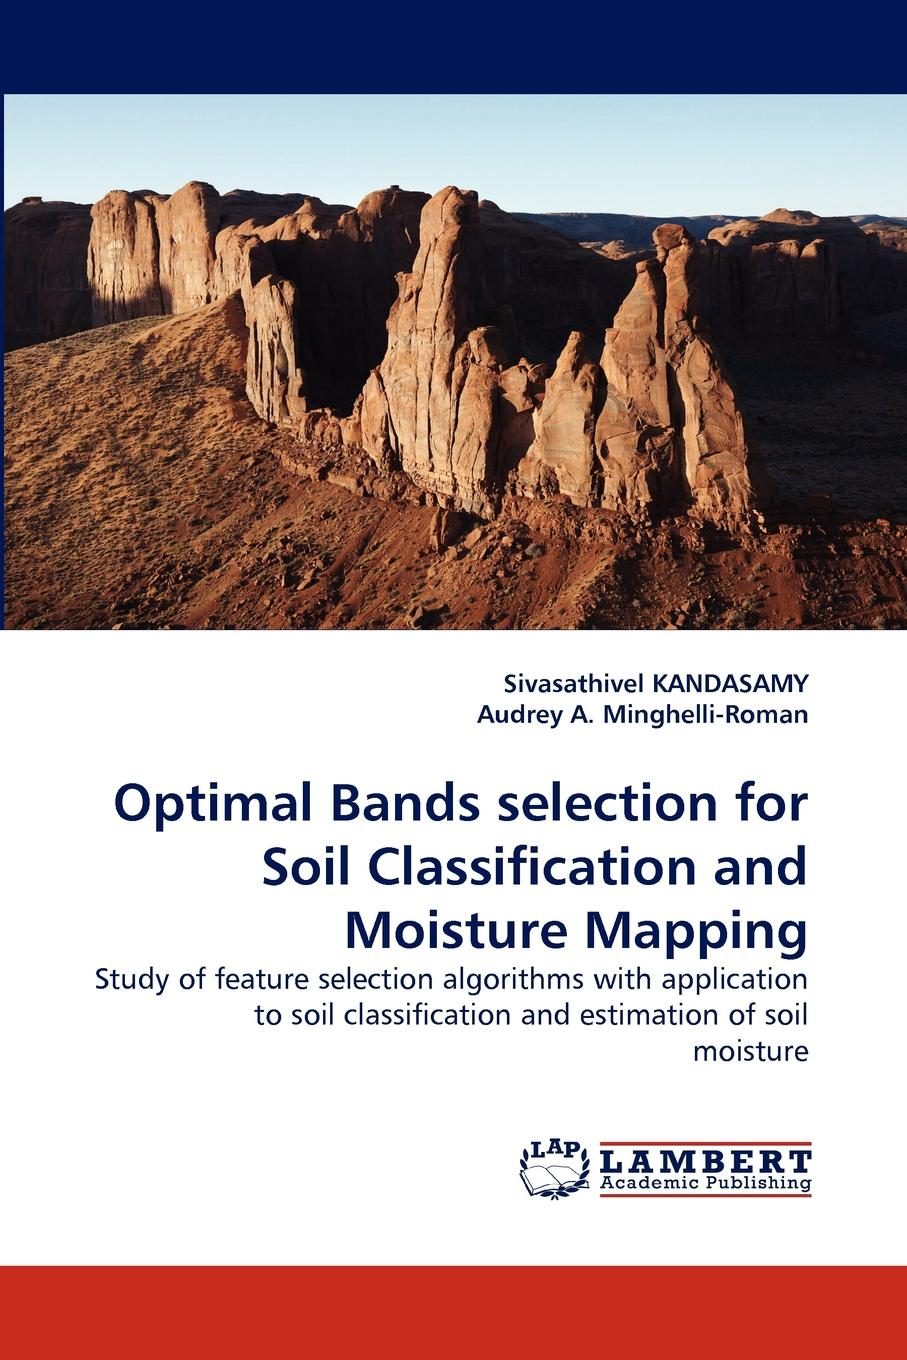 Sivasathivel KANDASAMY, Audrey A. Minghelli-Roman Optimal Bands selection for Soil Classification and Moisture Mapping spectral adjustable spikes 4x for he rack